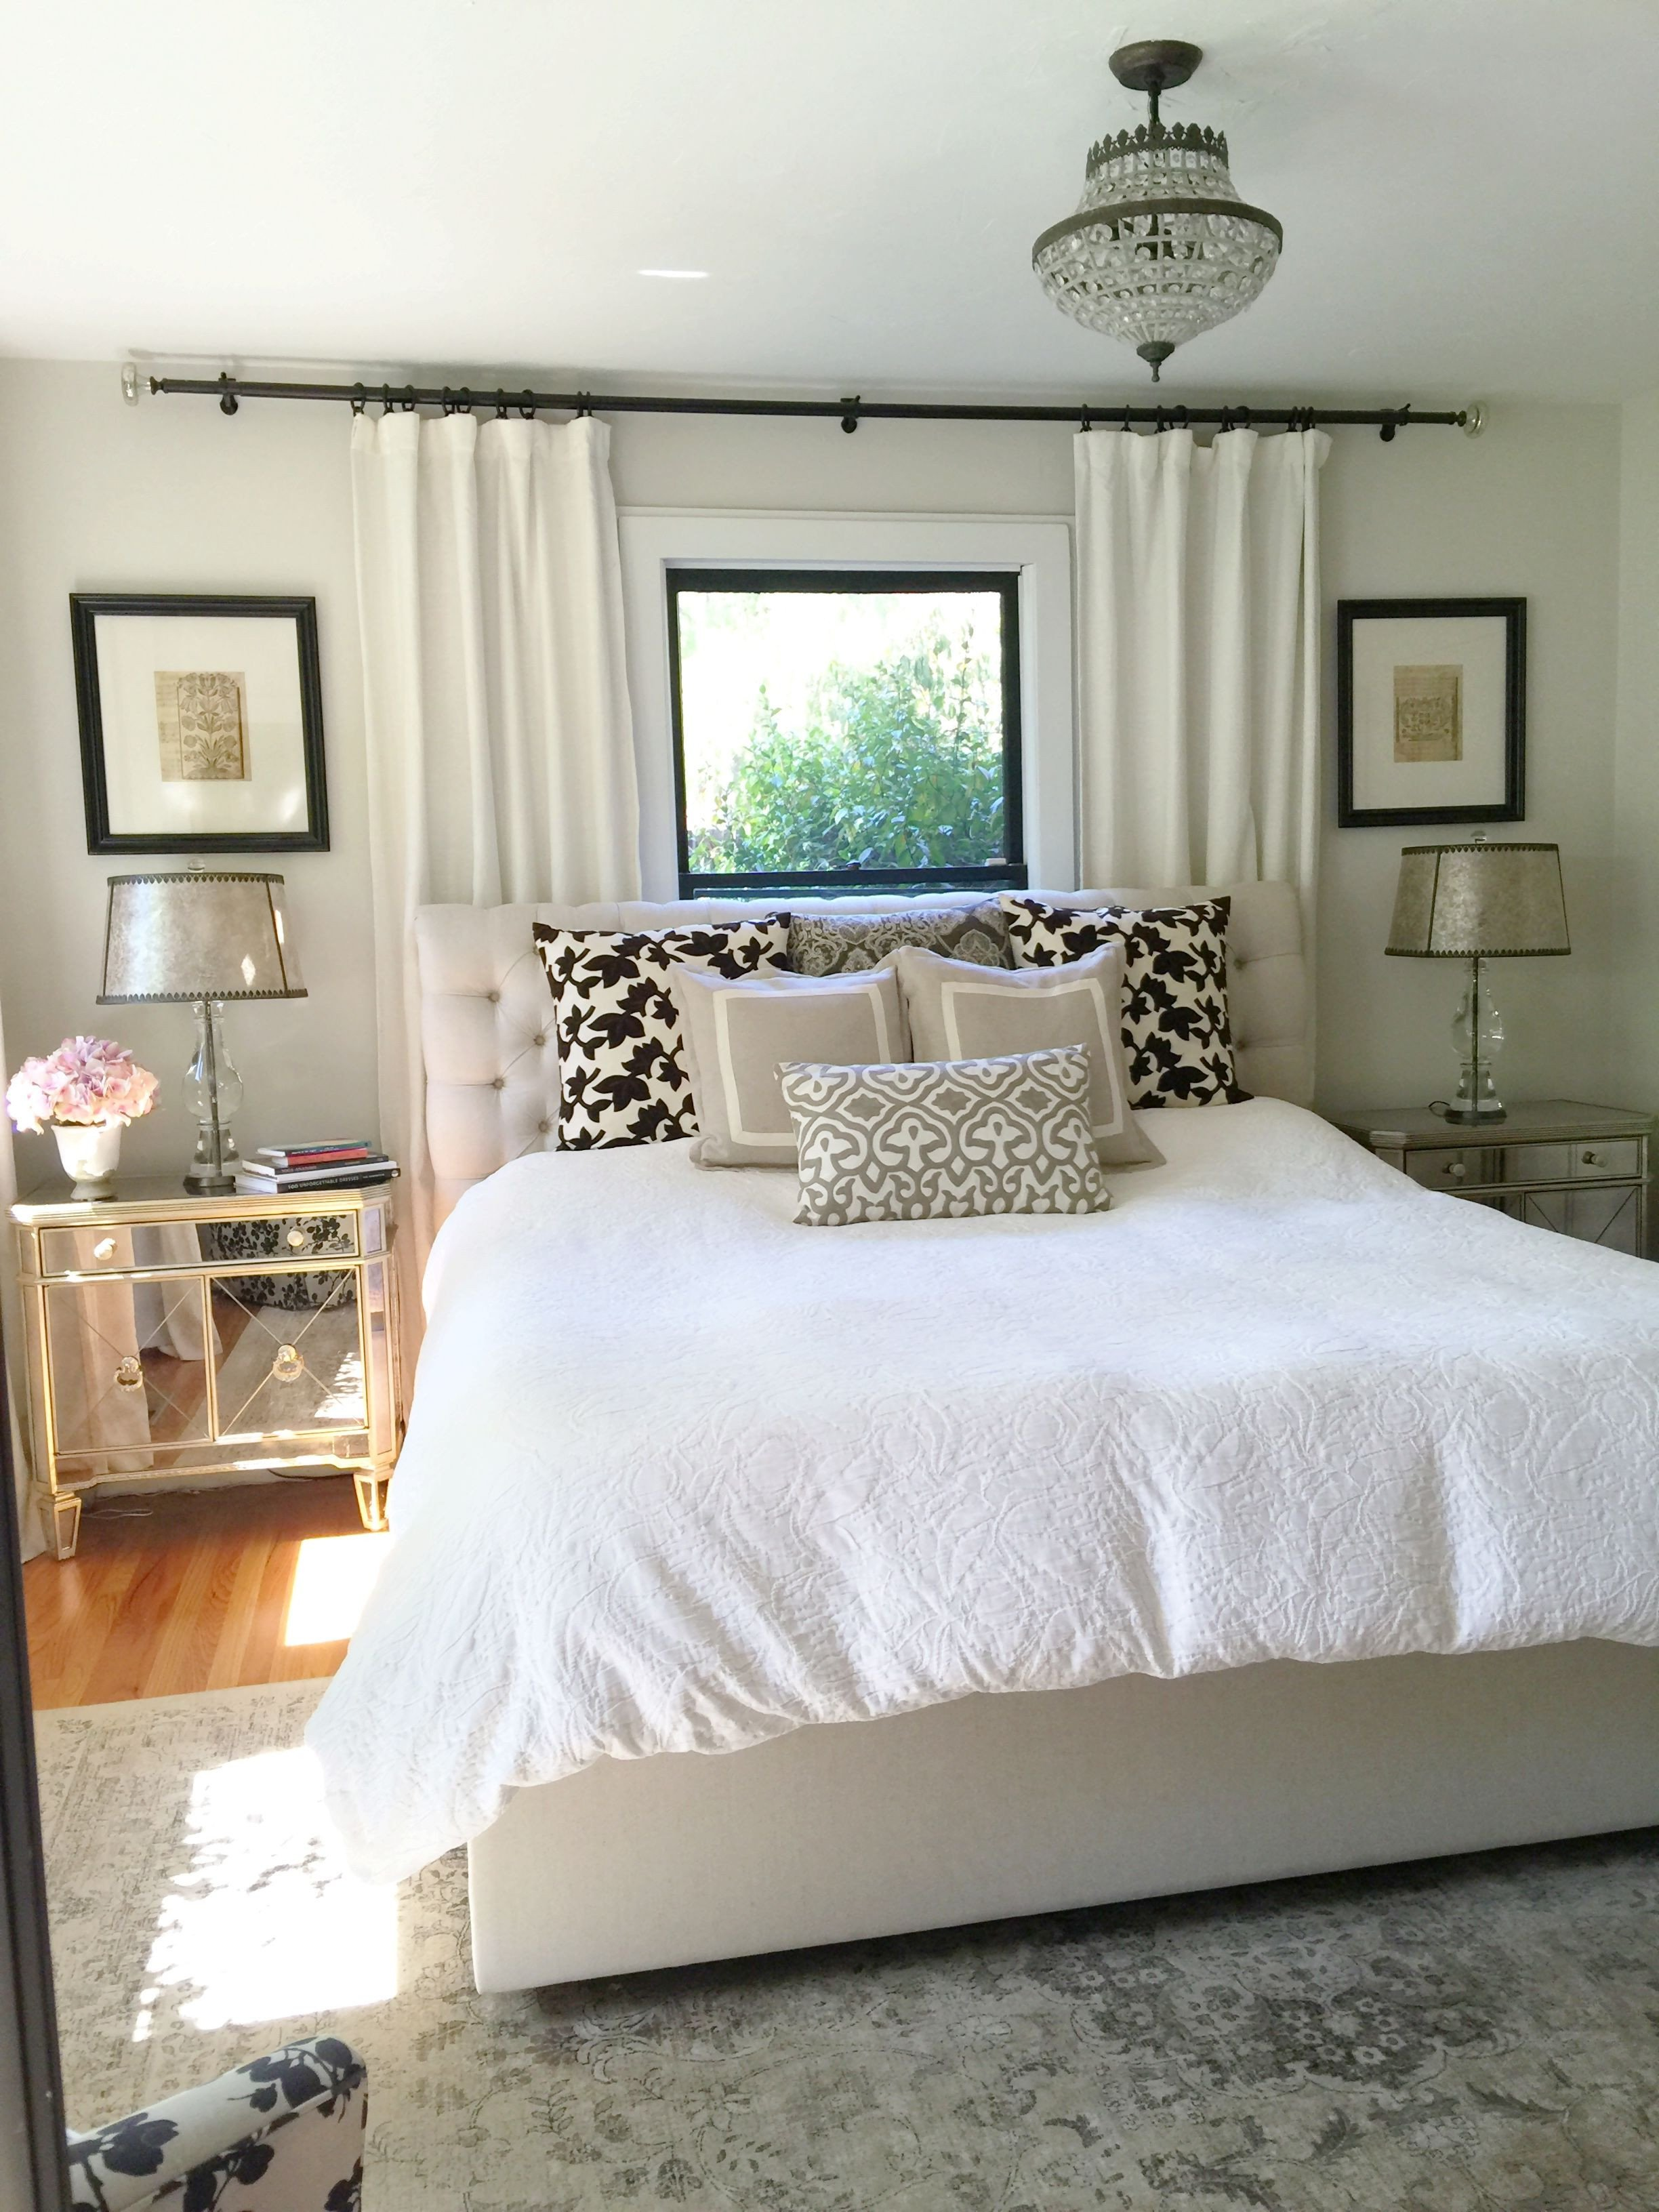 Curtains for Small Bedroom Windows New Neutral Bedroom Window Behind Bed Bedroom Window